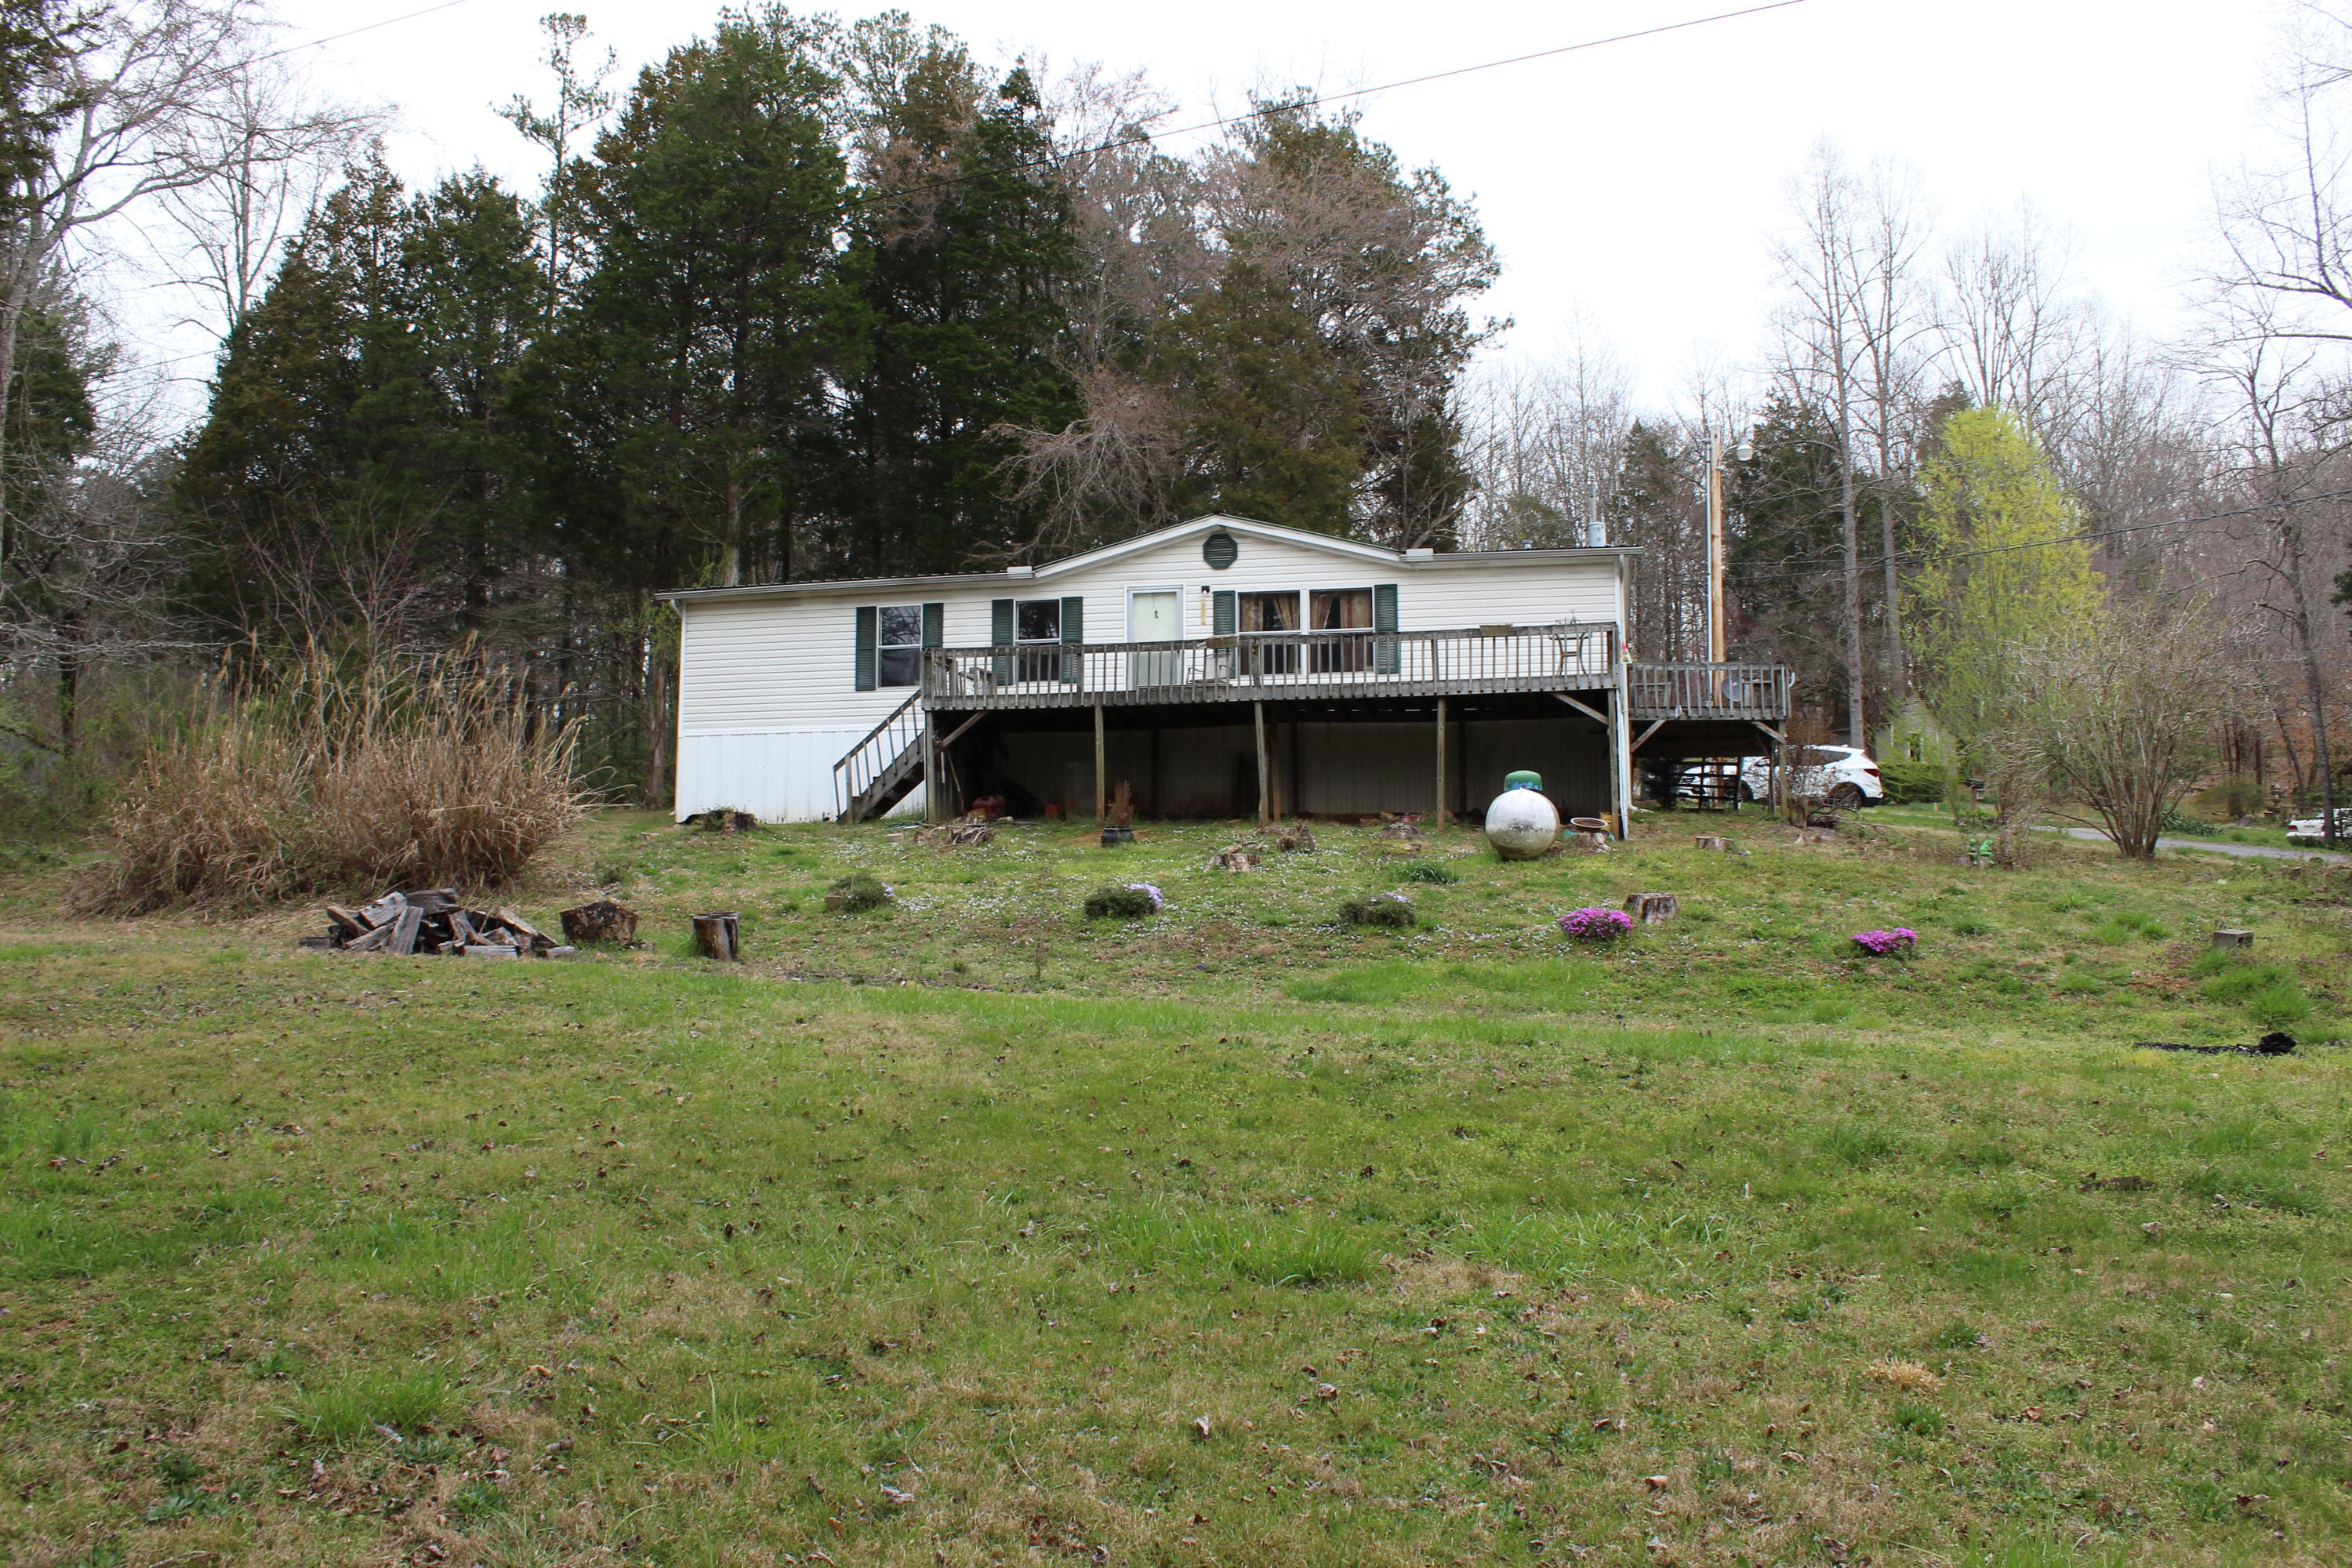 429 Old Leadmine Bend Rd, Sharps Chapel, Tennessee 37866, 3 Bedrooms Bedrooms, ,2 BathroomsBathrooms,Single Family,For Sale,Old Leadmine Bend,1074724